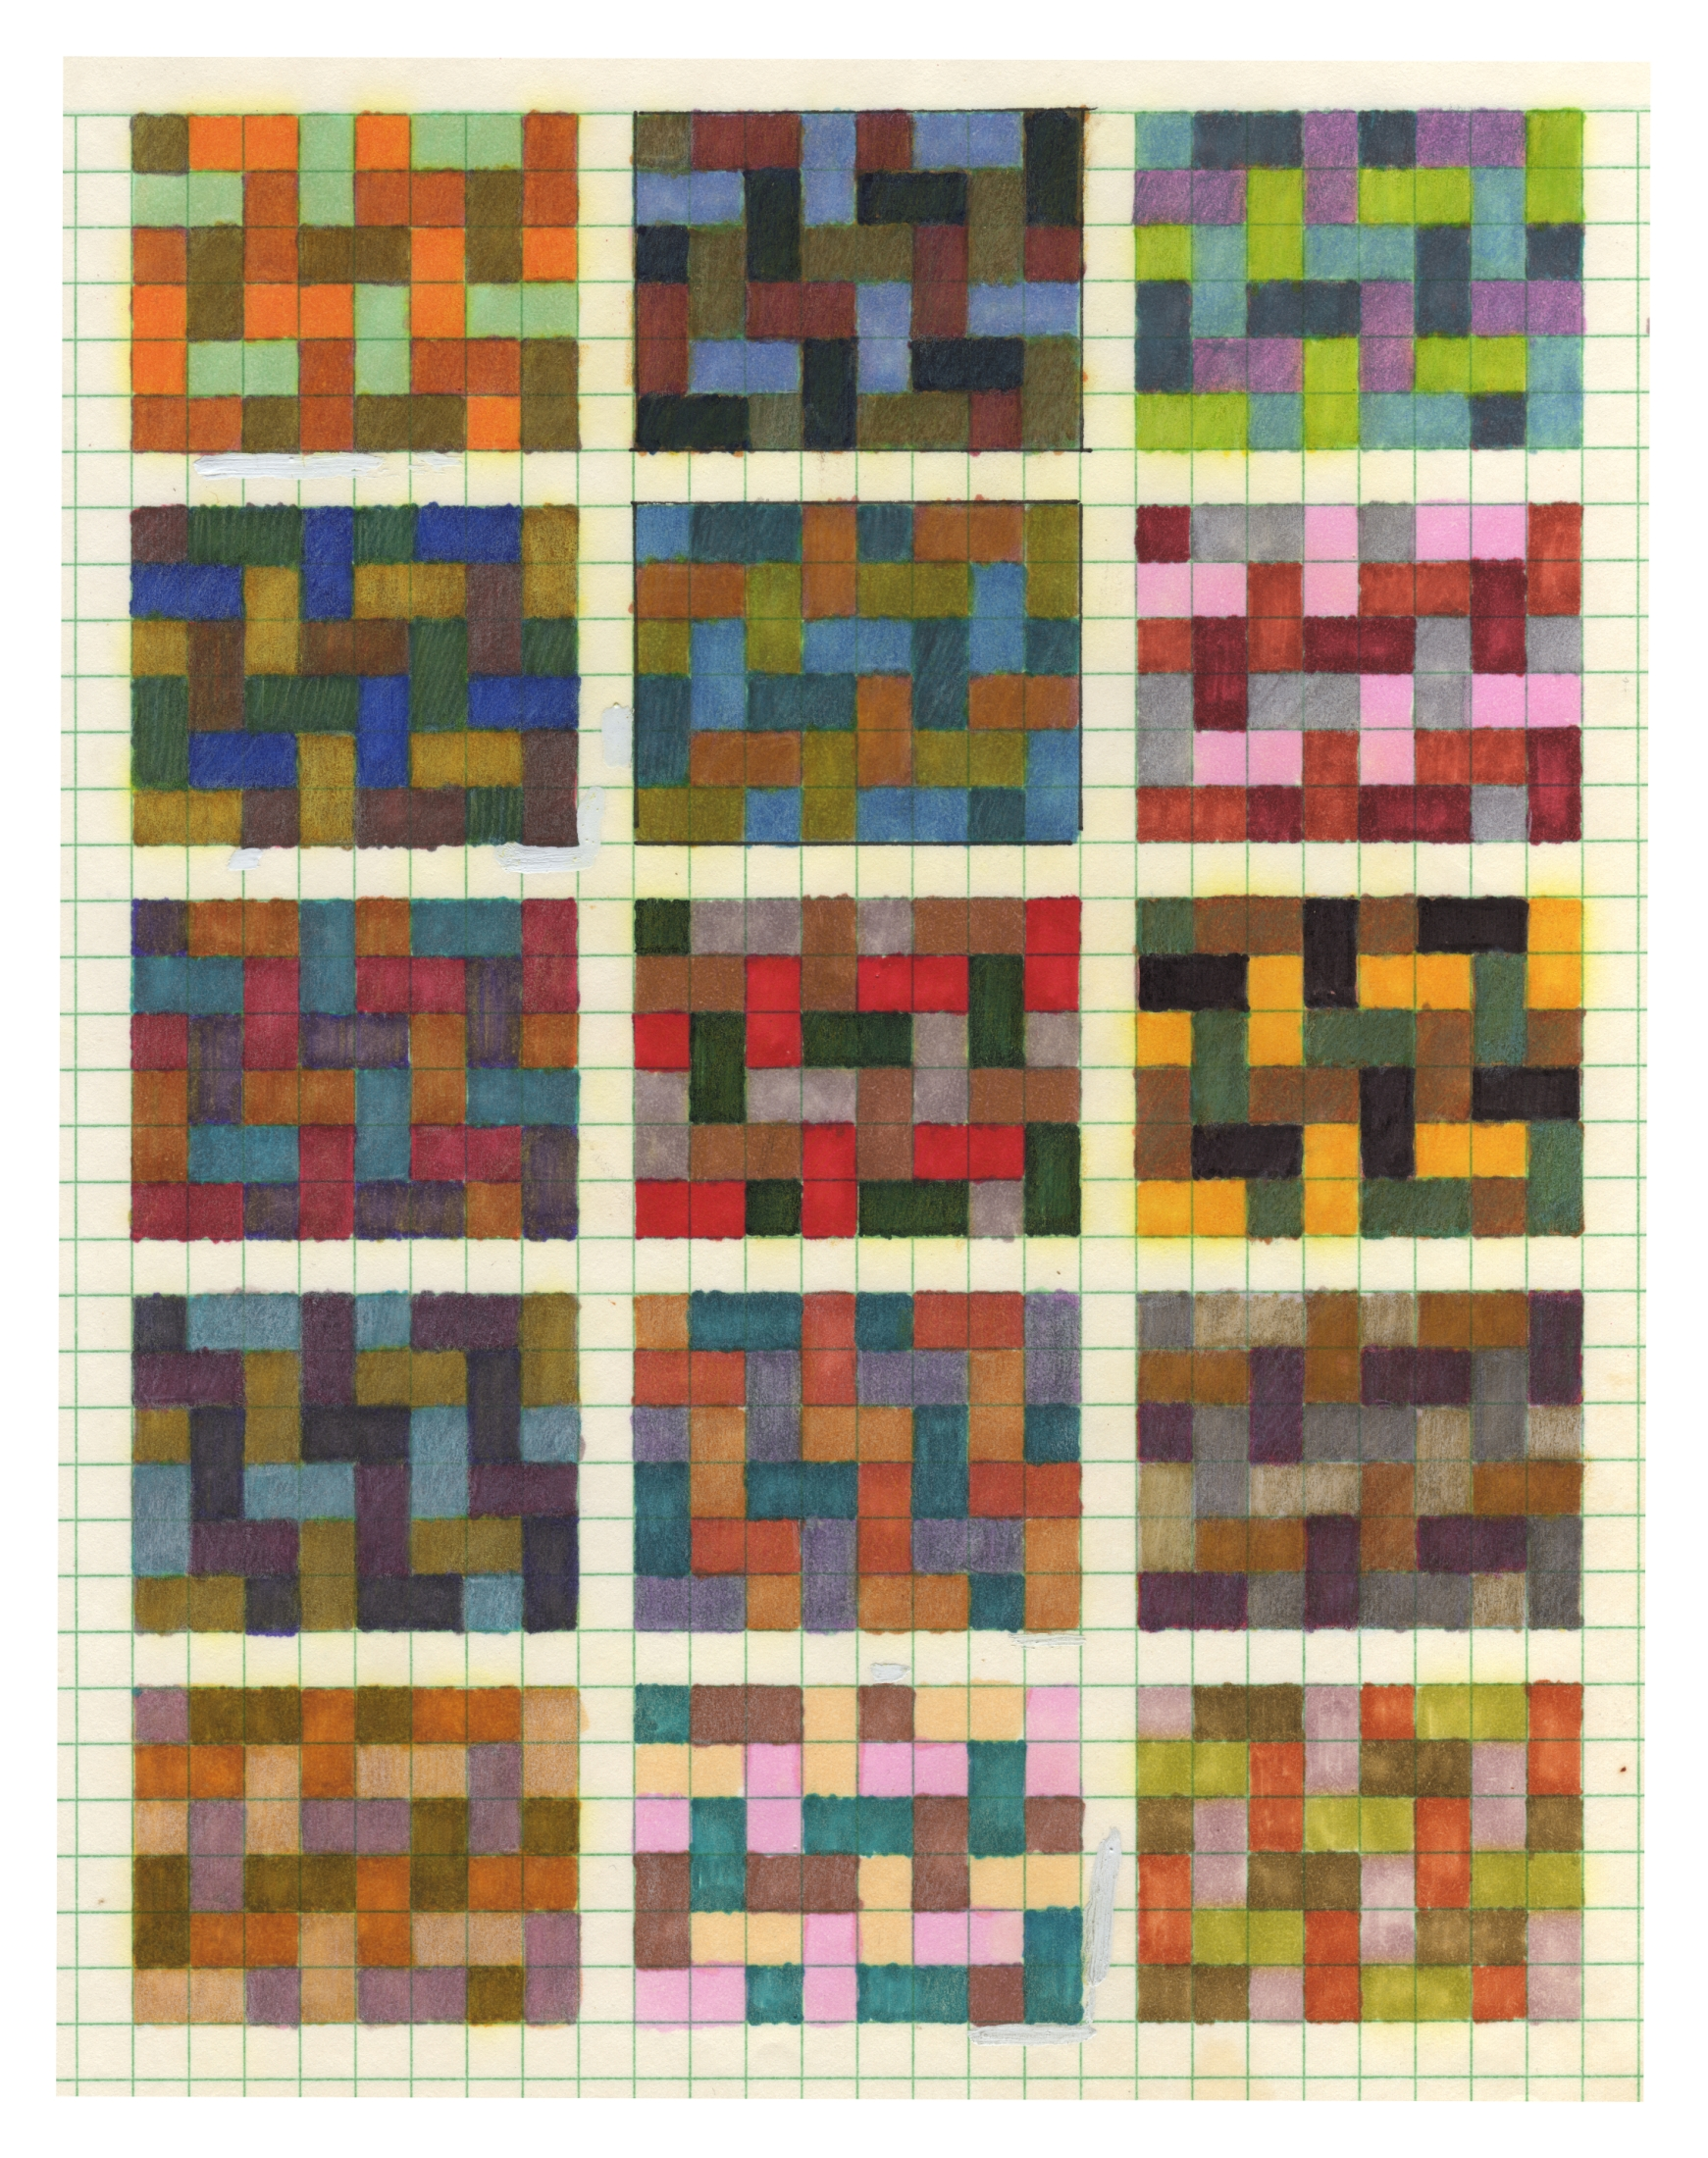 Graphpaper sketches 1989-92 - felt pen / colored pencil